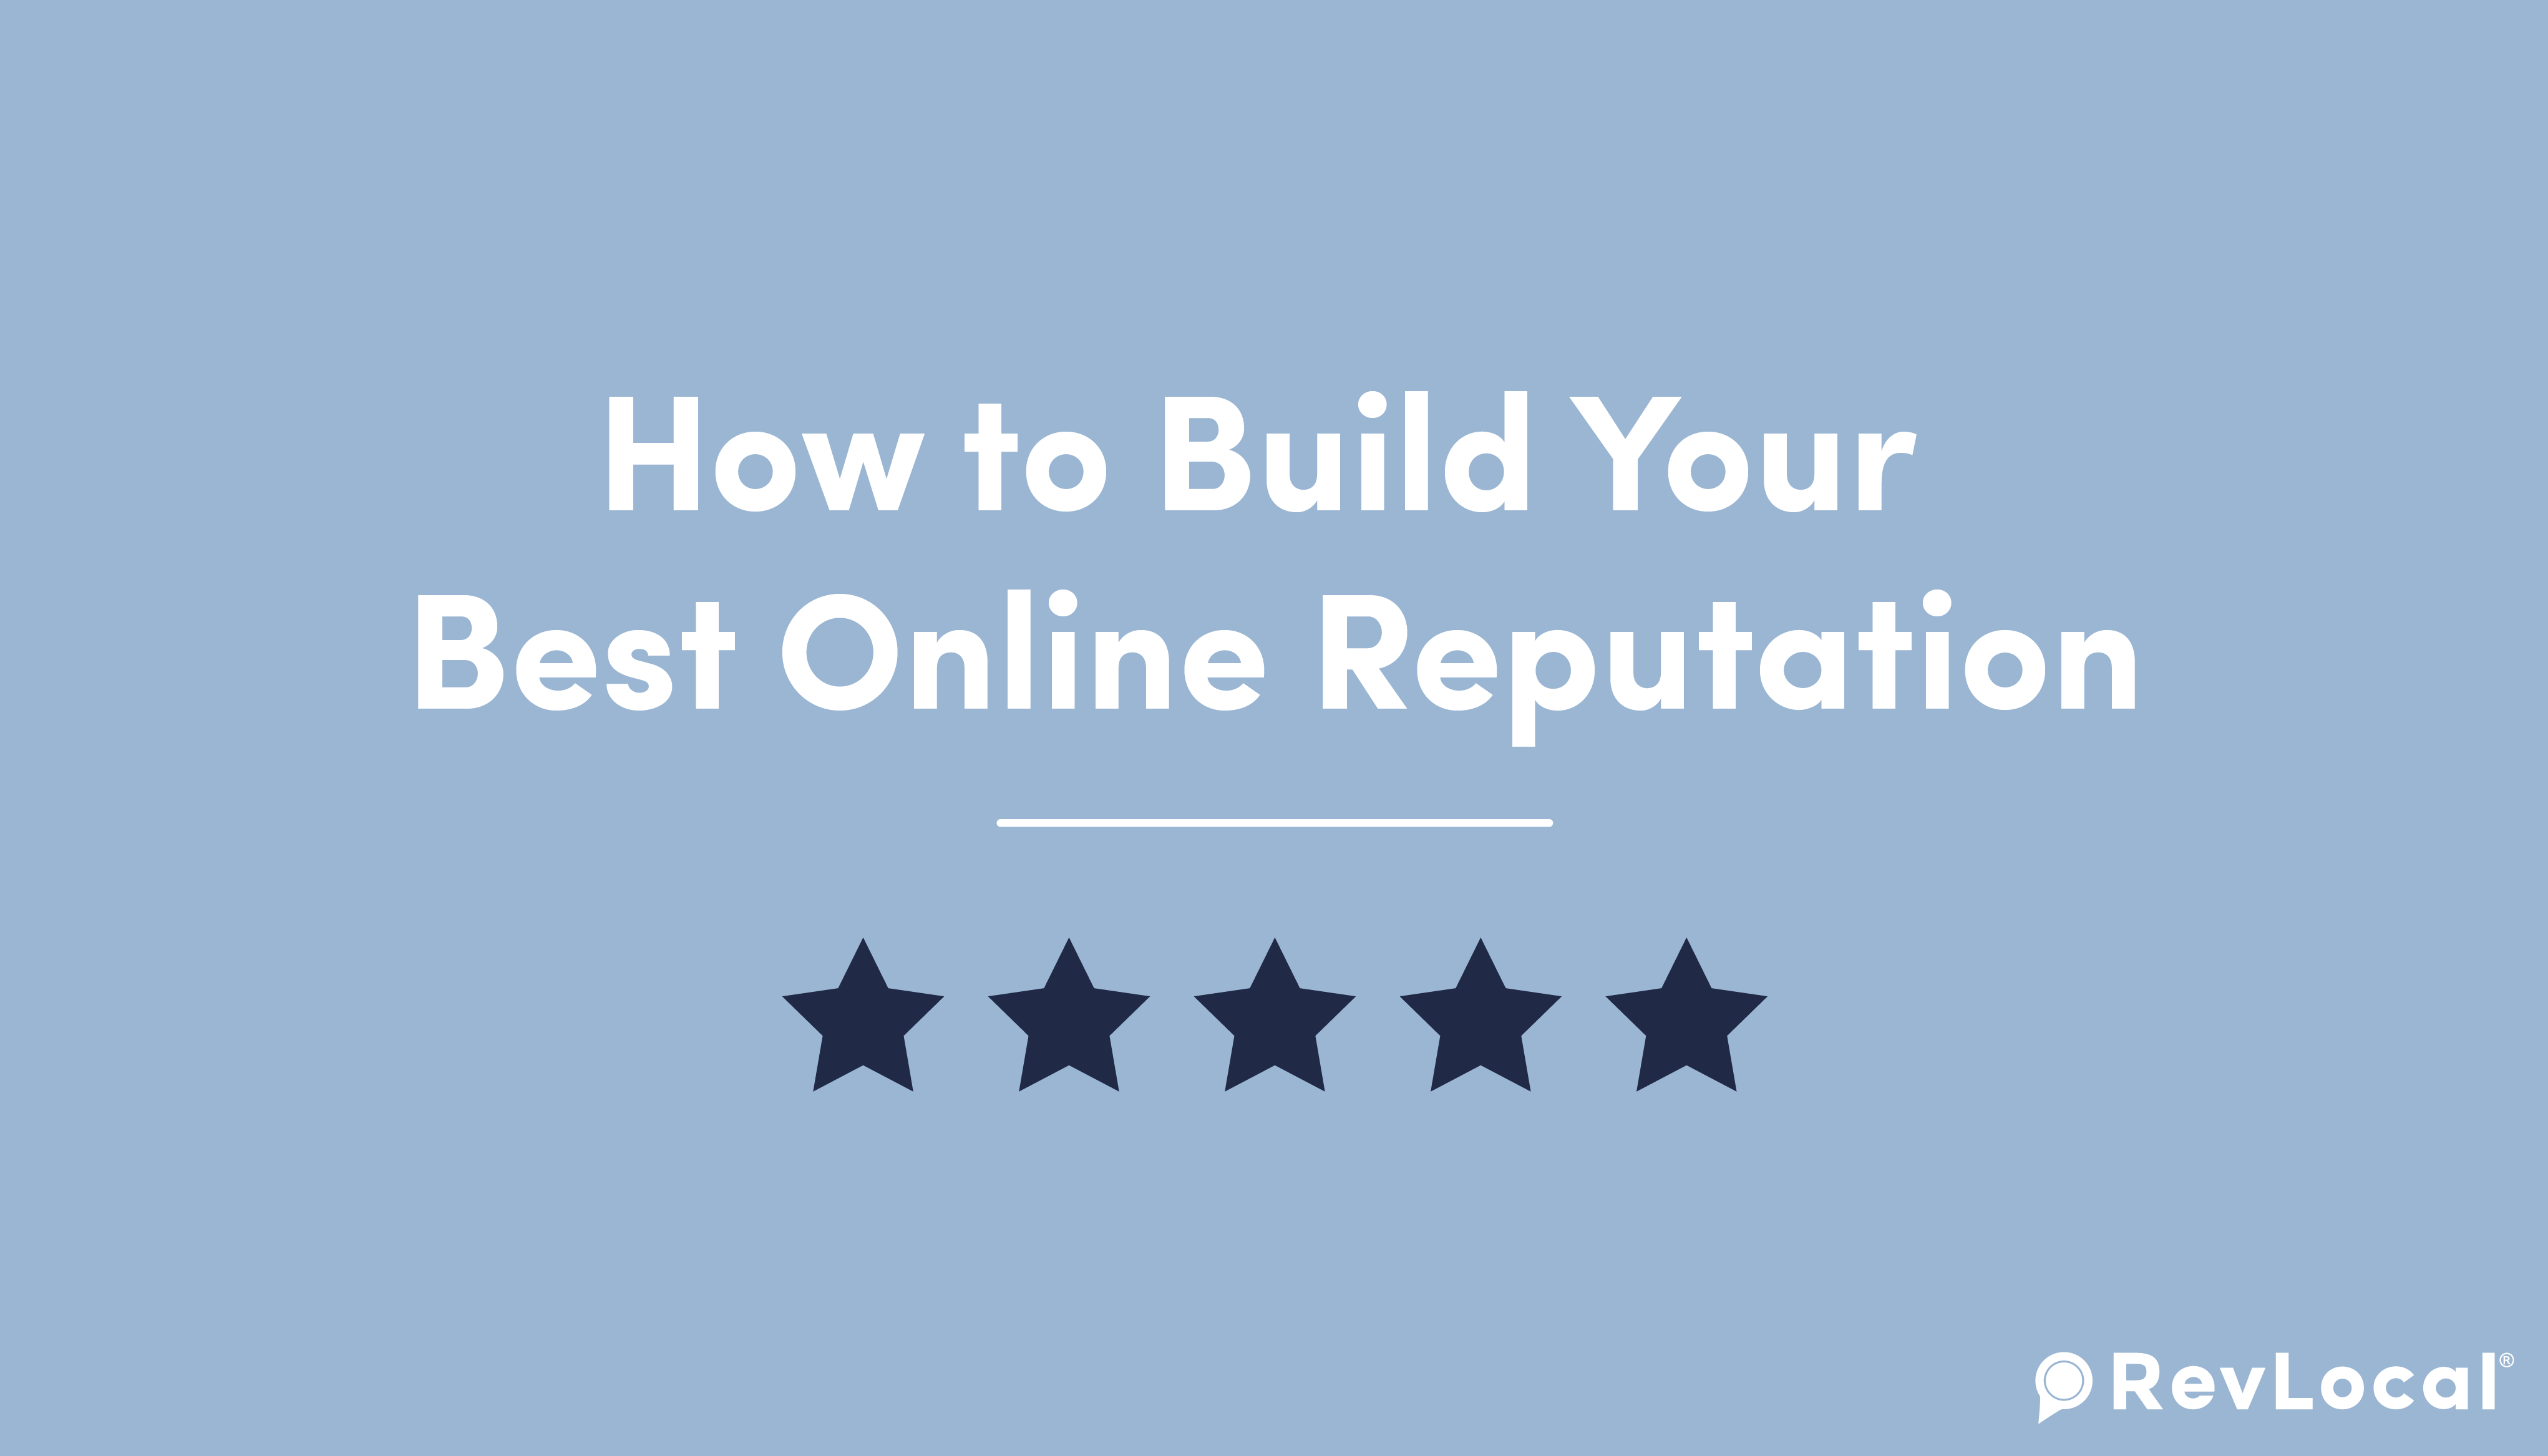 How to build your best online reputation